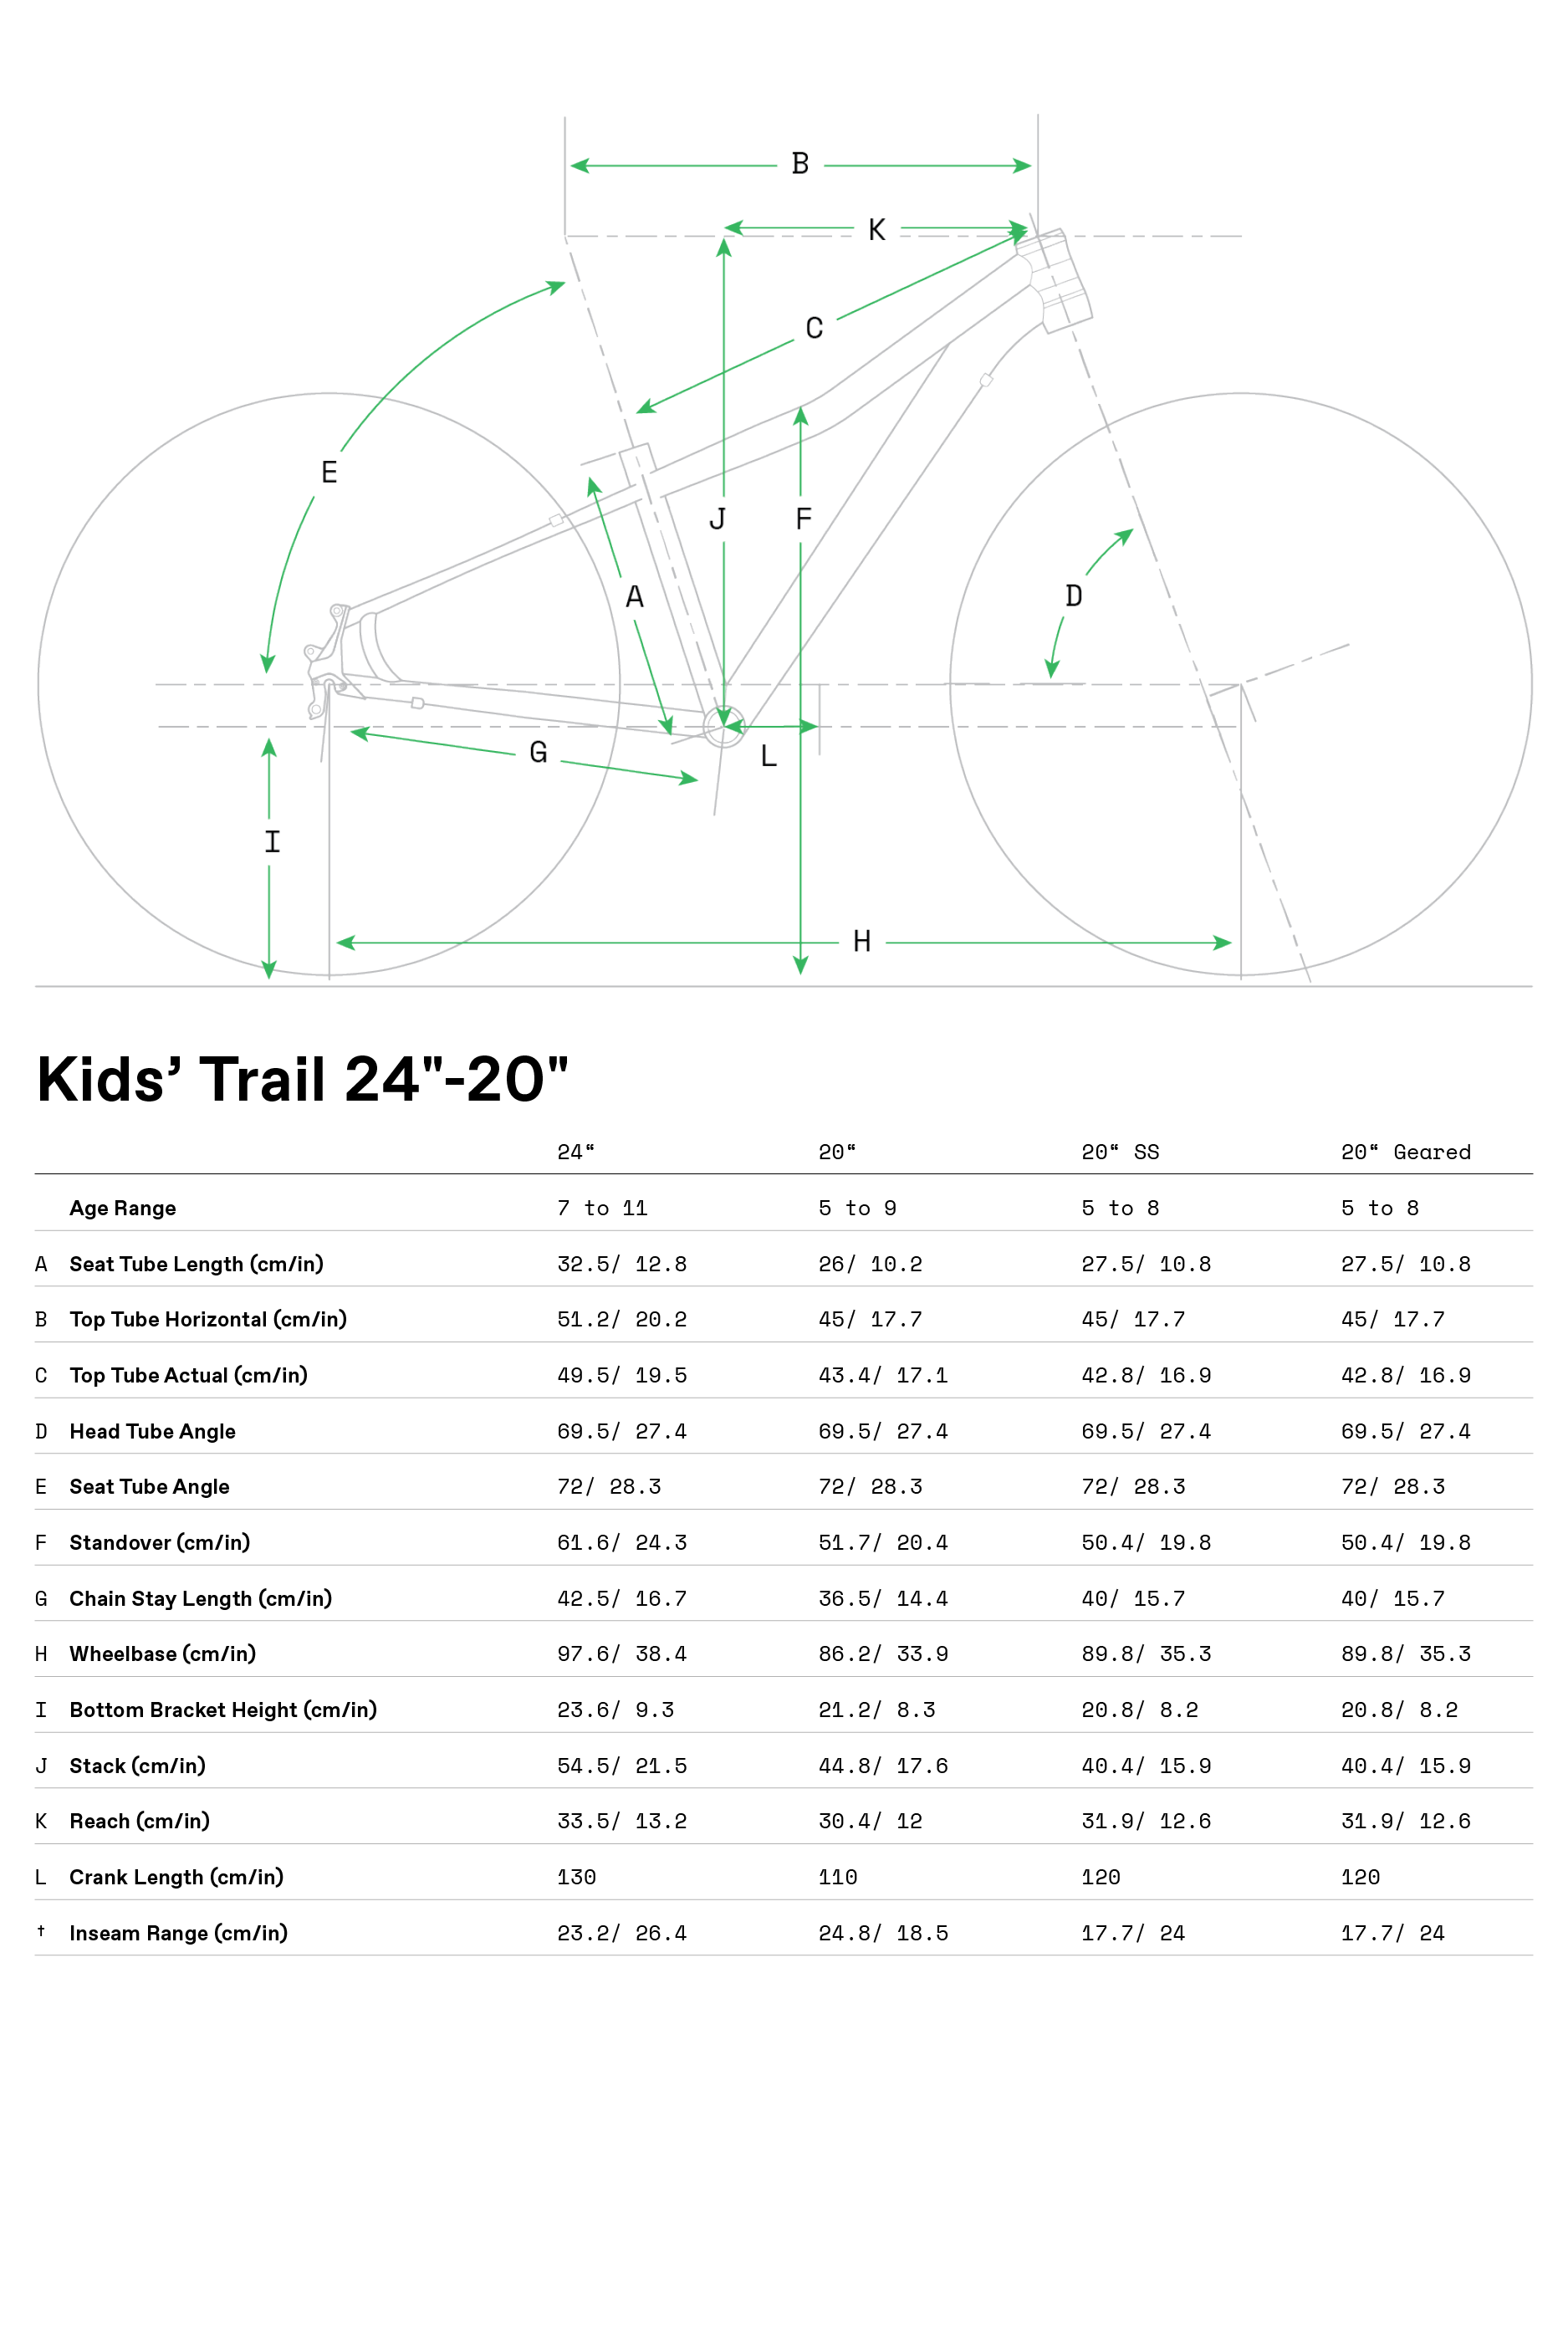 https://d1mo5ln9tjltxq.cloudfront.net/-/media/images/geometry/geo-diagrams-with-grids/kids_trail_24-20_geo_table.png?h=2805&la=en-CA&w=1875&hash=0E9535263864BB98D810CC4D20689B00C43AD53F